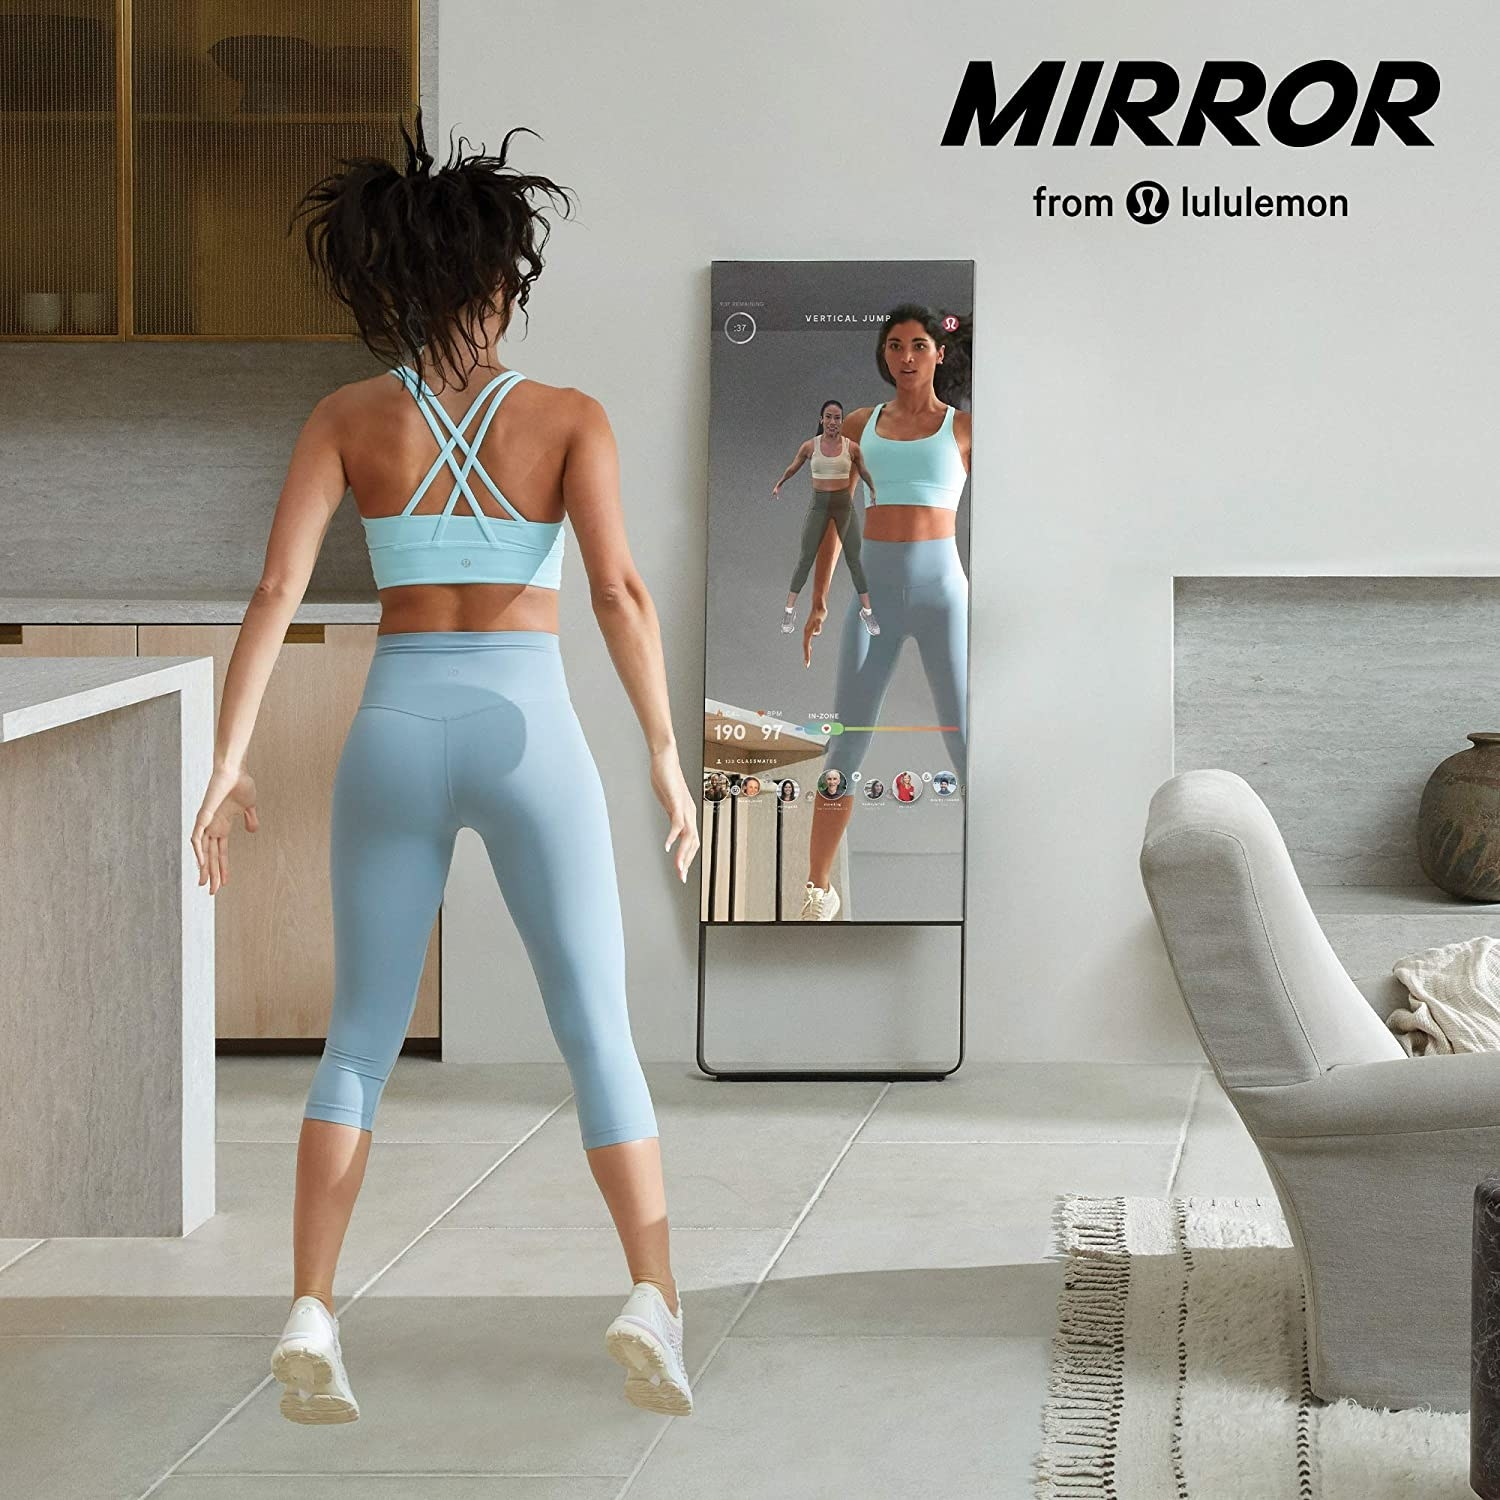 A model working out in the mirror